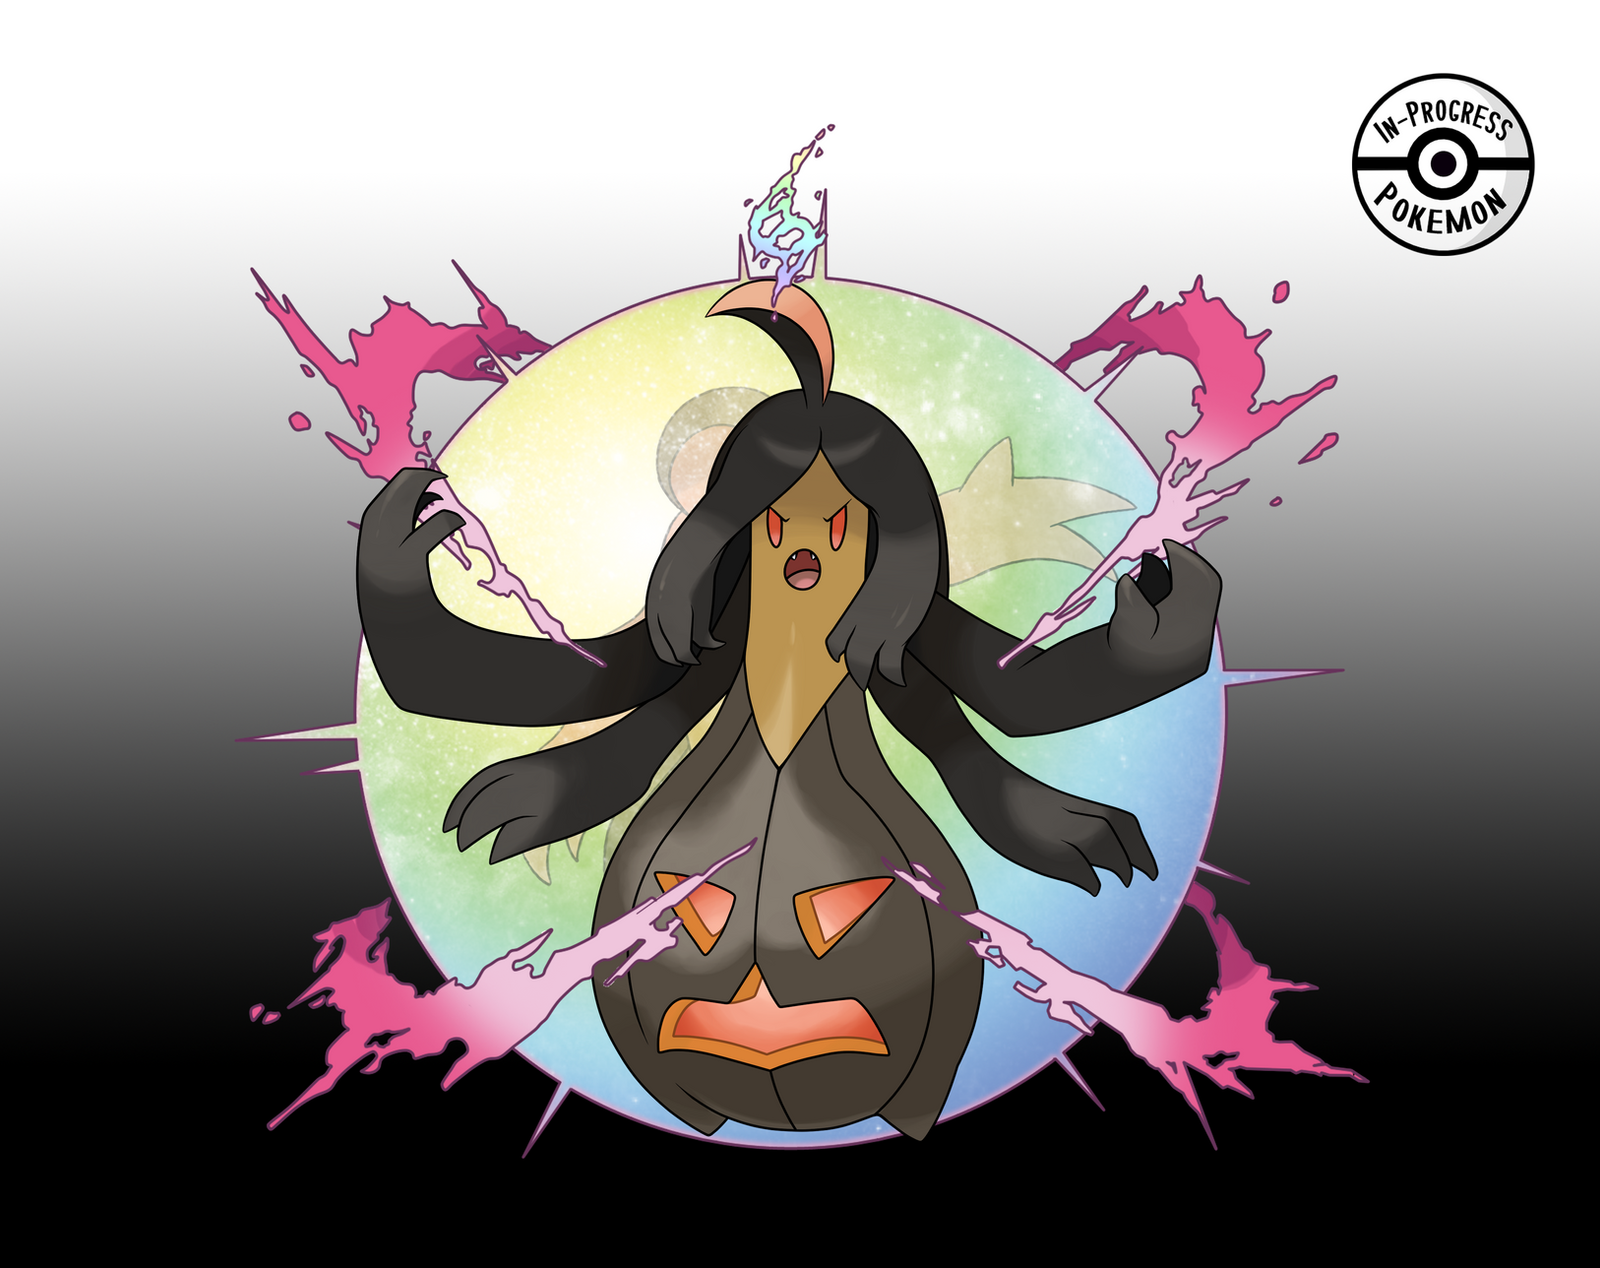 Fake Mega Gourgeist by InProgressPokemon on DeviantArt